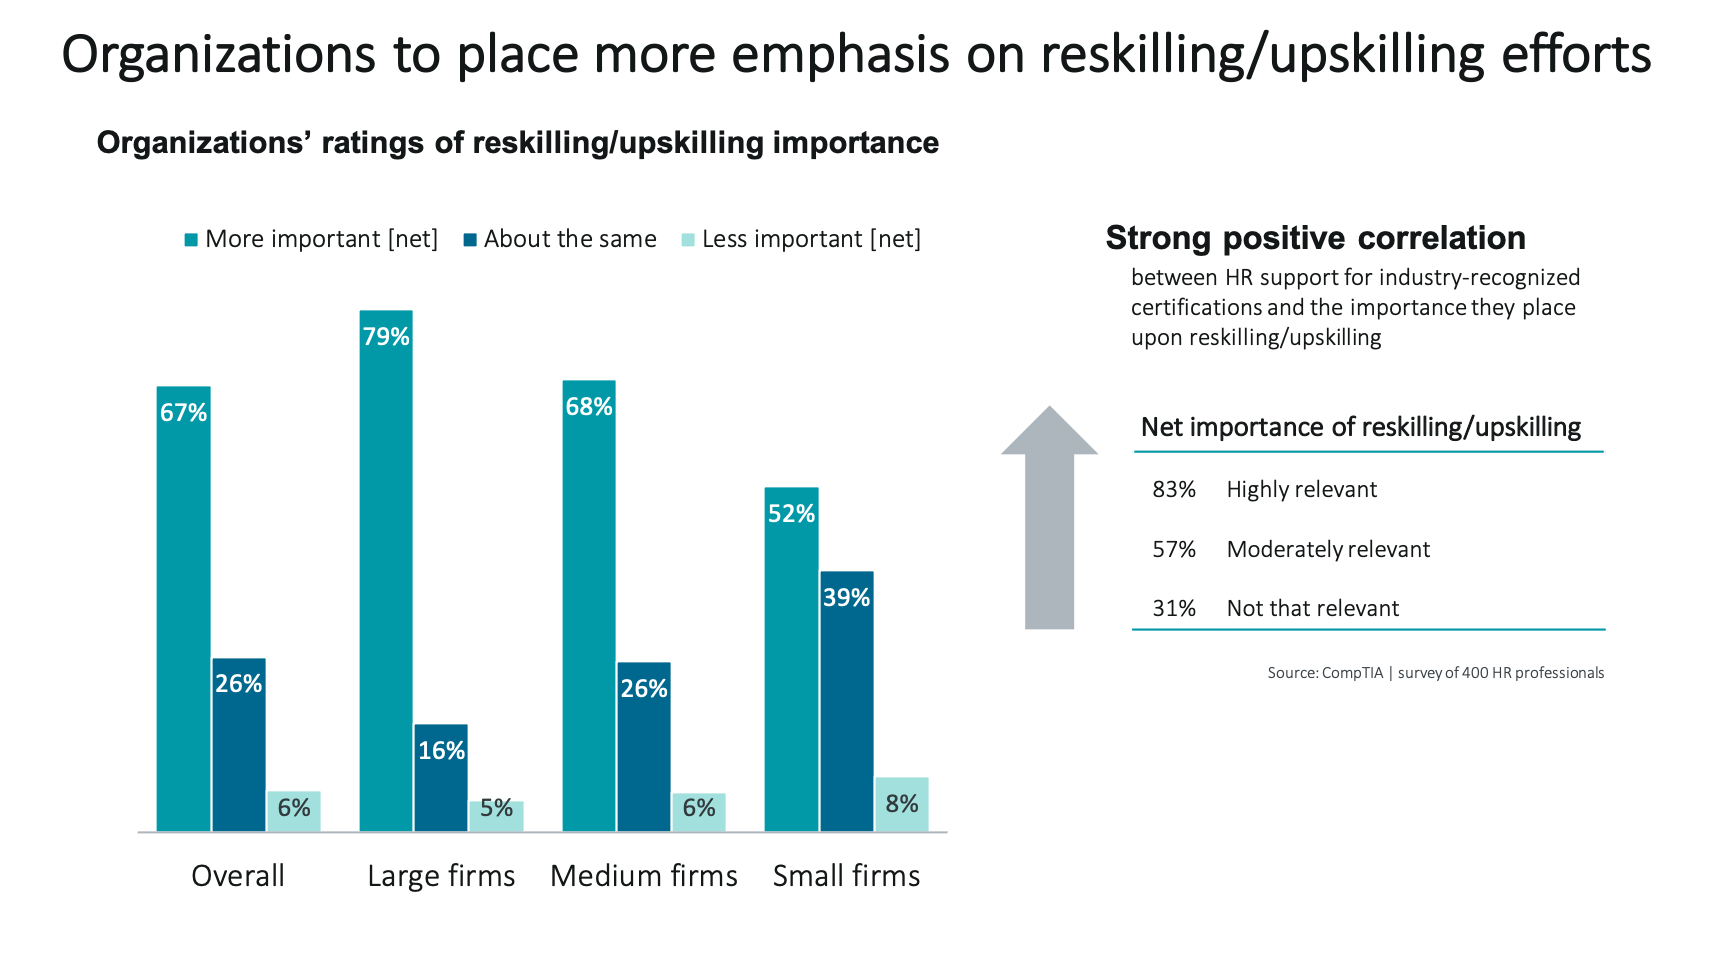 Organizations to place more emphasis on reskilling & upskilling efforts